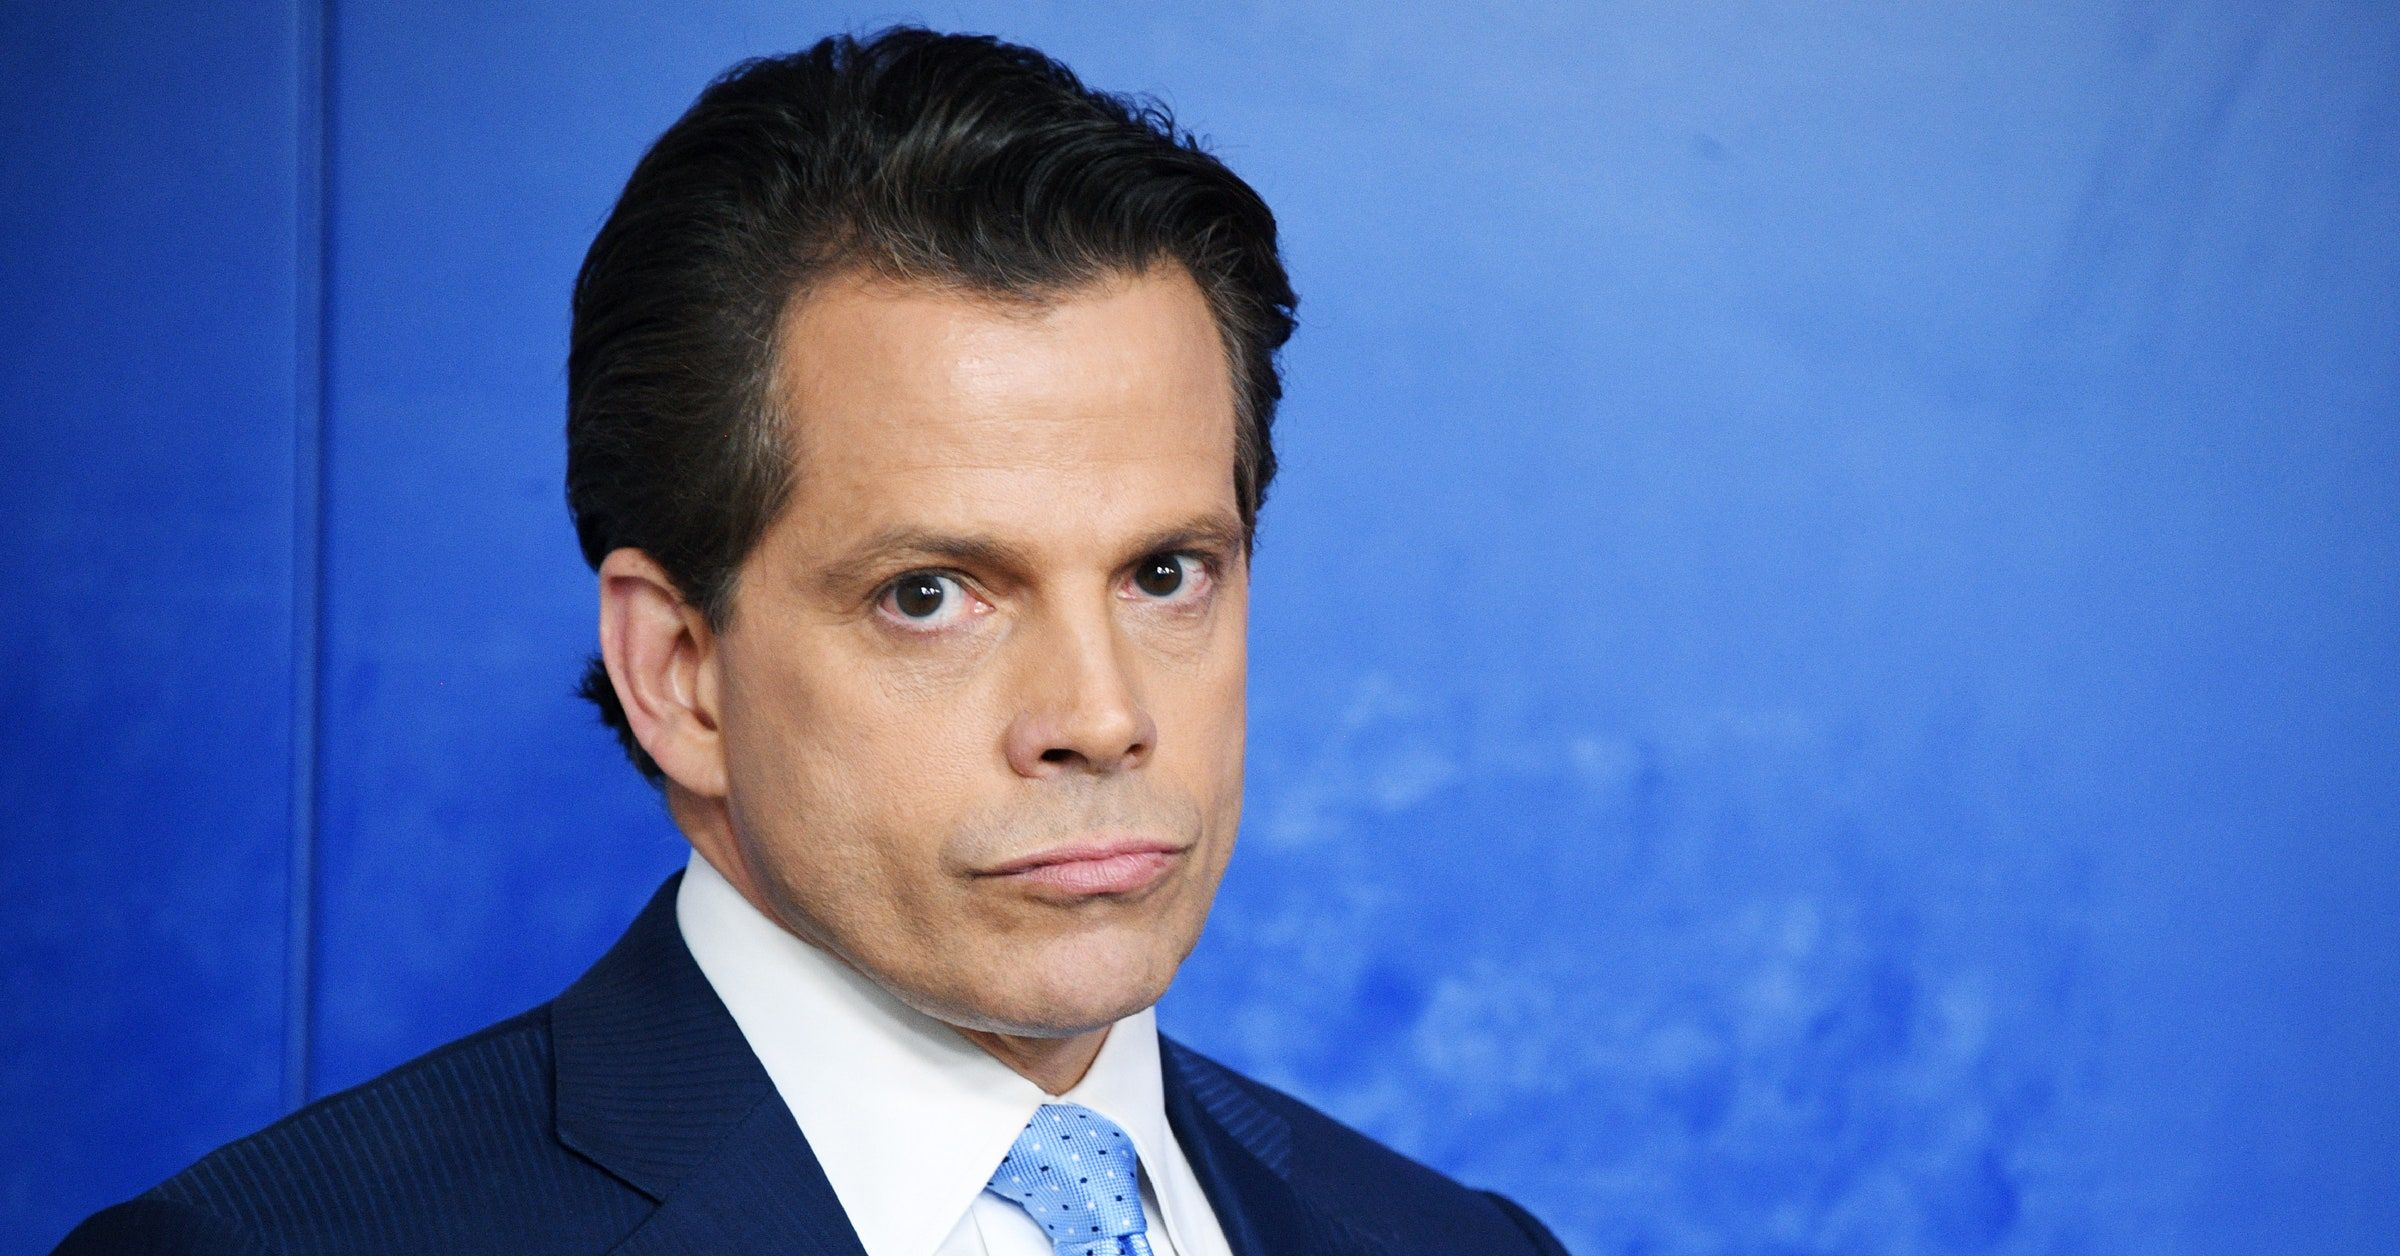 Trump Communications Director Anthony Scaramucci Disagrees With Most Trump Policies